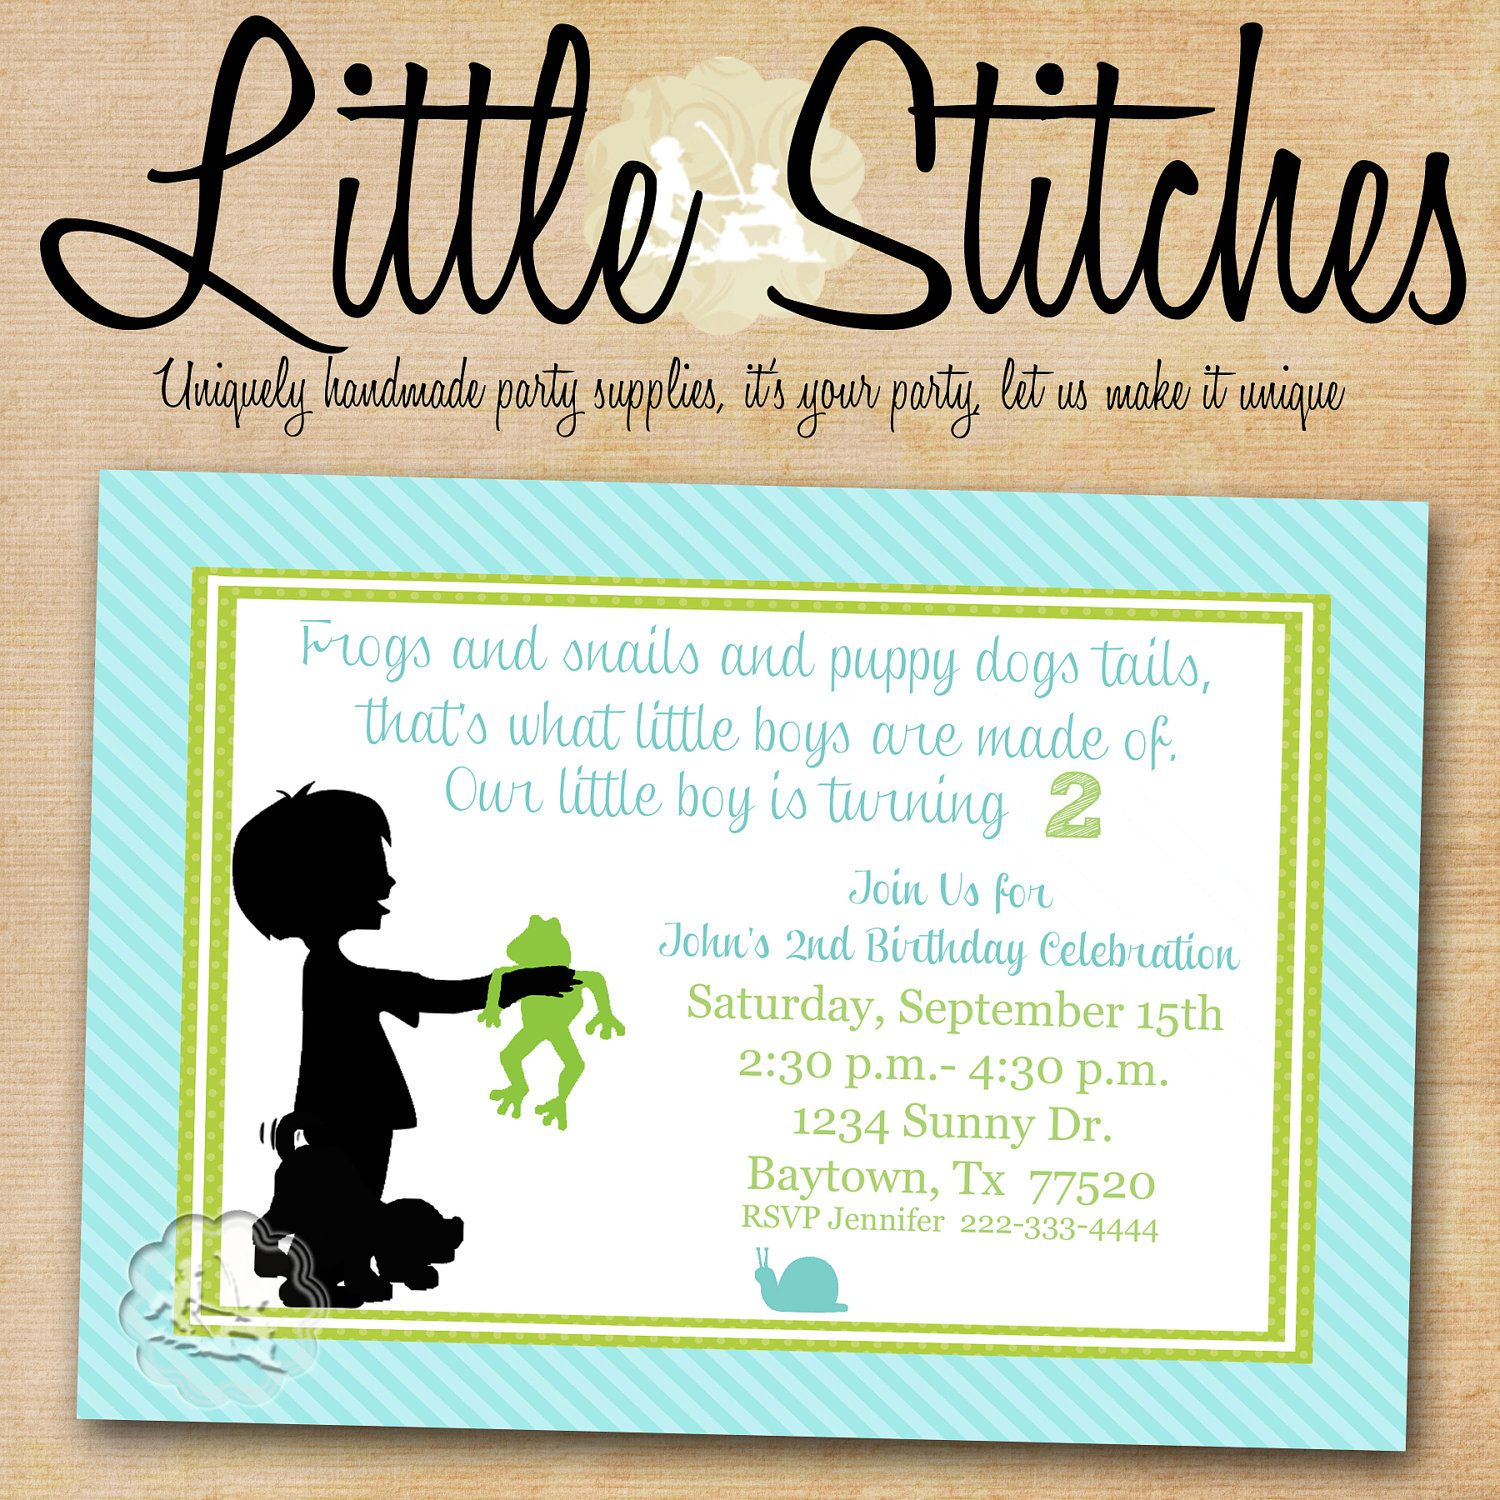 What Little Boys are made of Birthday Party/ Baby Shower Invitation ...